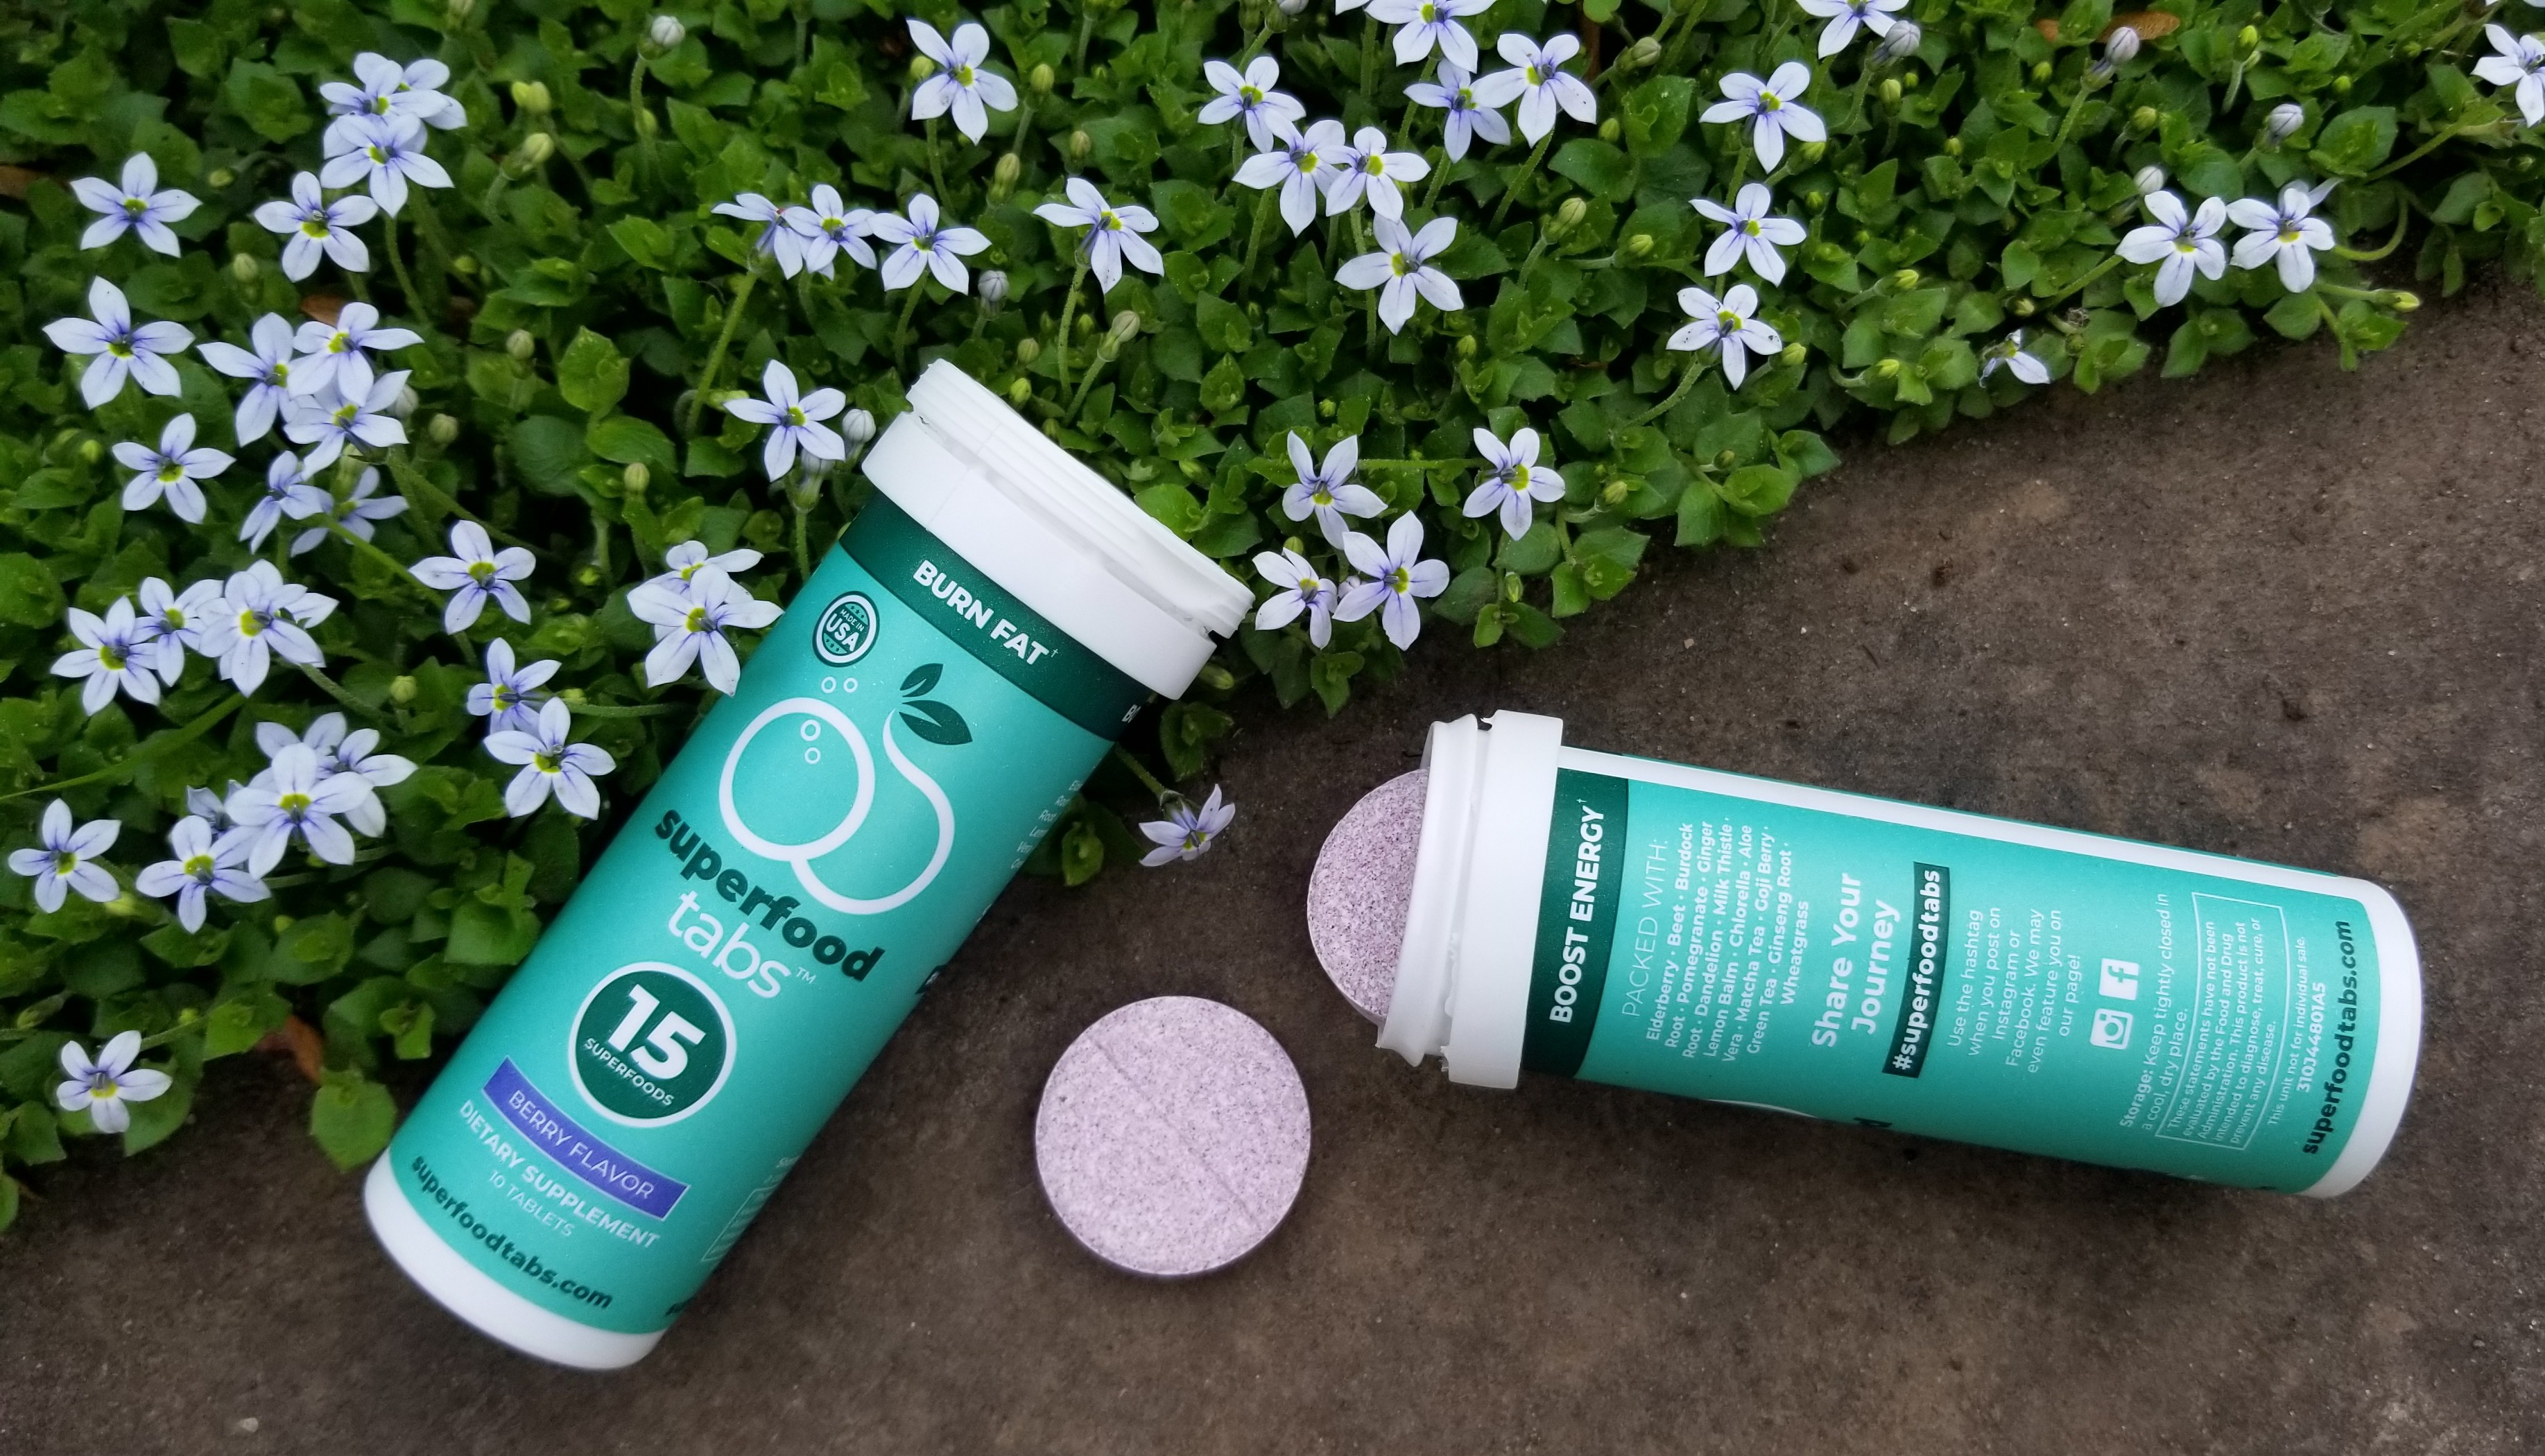 Product Review: Superfood Tabs (Formerly by Skinnytabs)